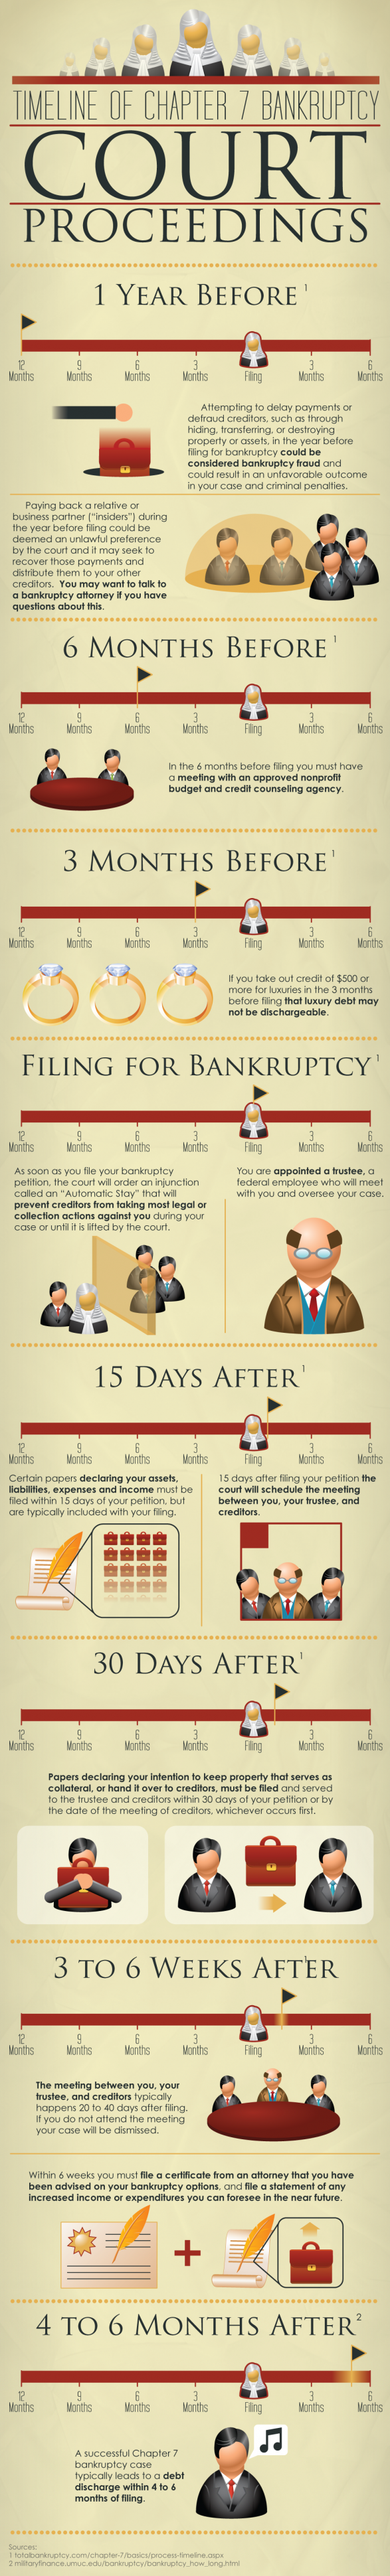 Timeline of Chapter 7 Bankruptcy Court Proceedings